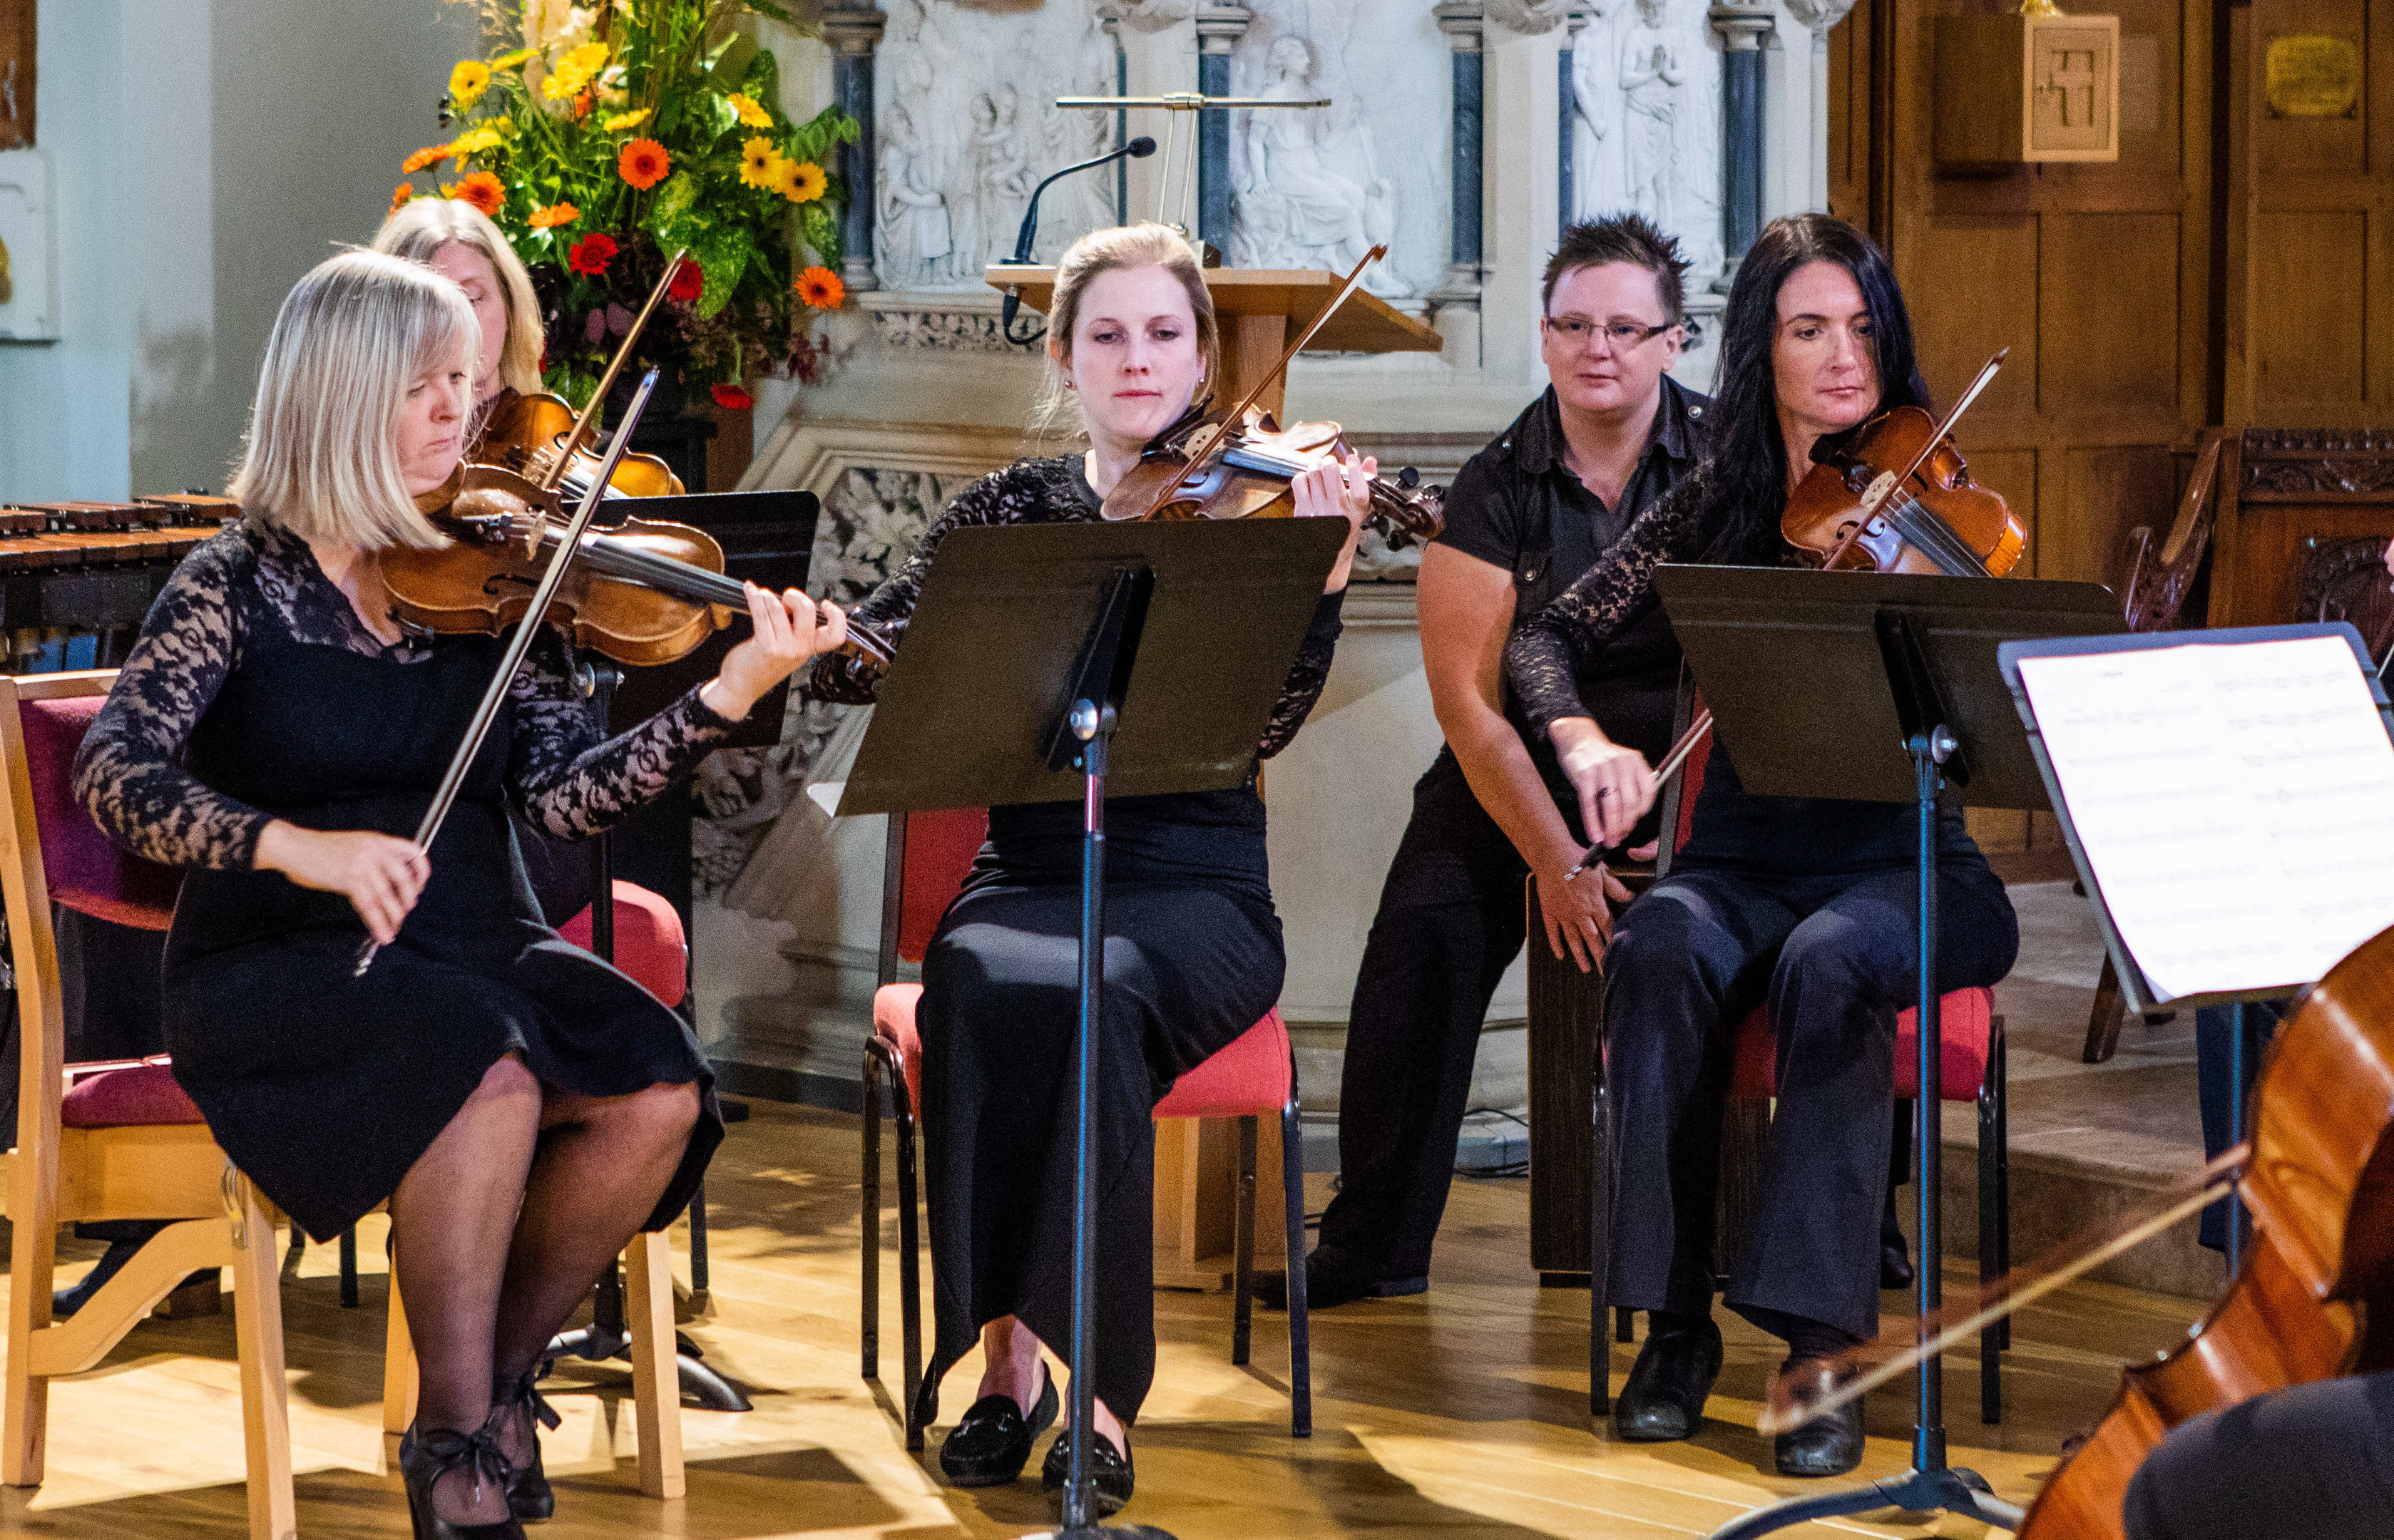 The Making Music Magic fundraising concert at St Johns Episcopal Church.